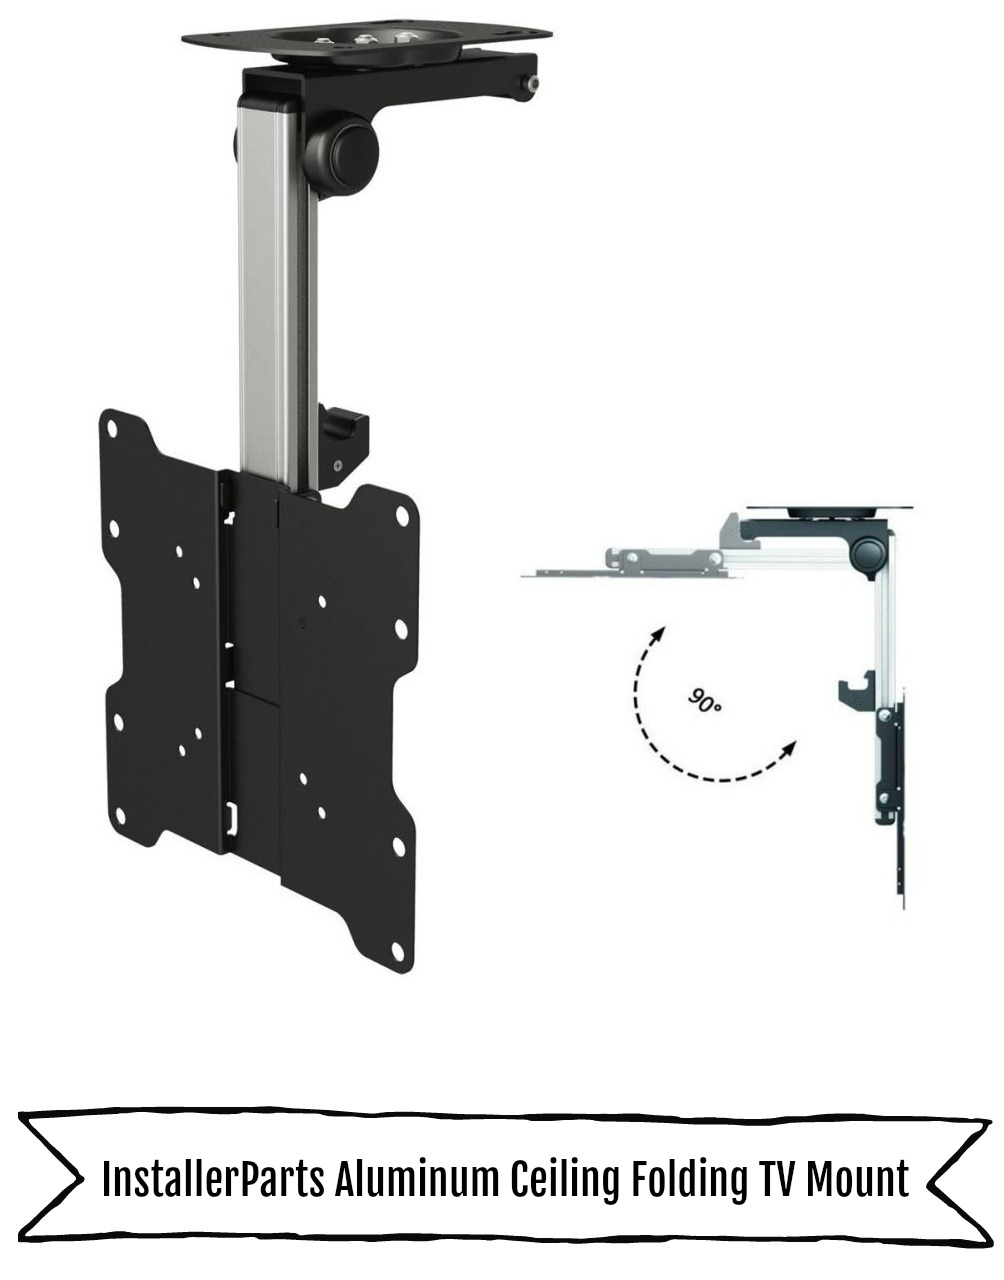 InstallerParts Aluminum Ceiling Folding TV Mount